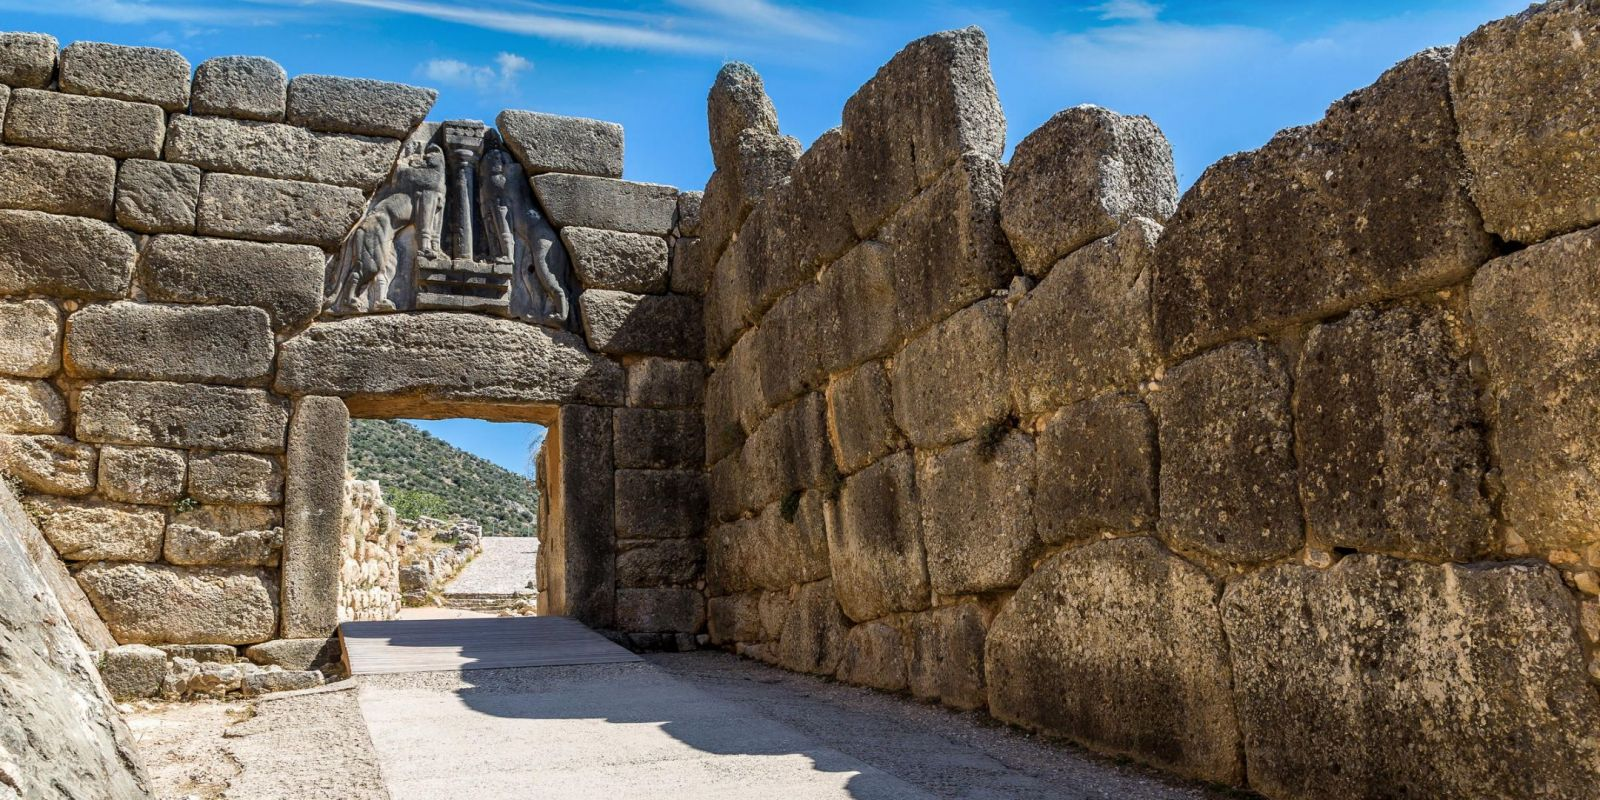 Mycenae, Greece - Monterrasol small group tours to Mycenae, Greece. Travel agency offers small group car tours to see Mycenae in Greece. Order small group tour to Mycenae with departure date on request.